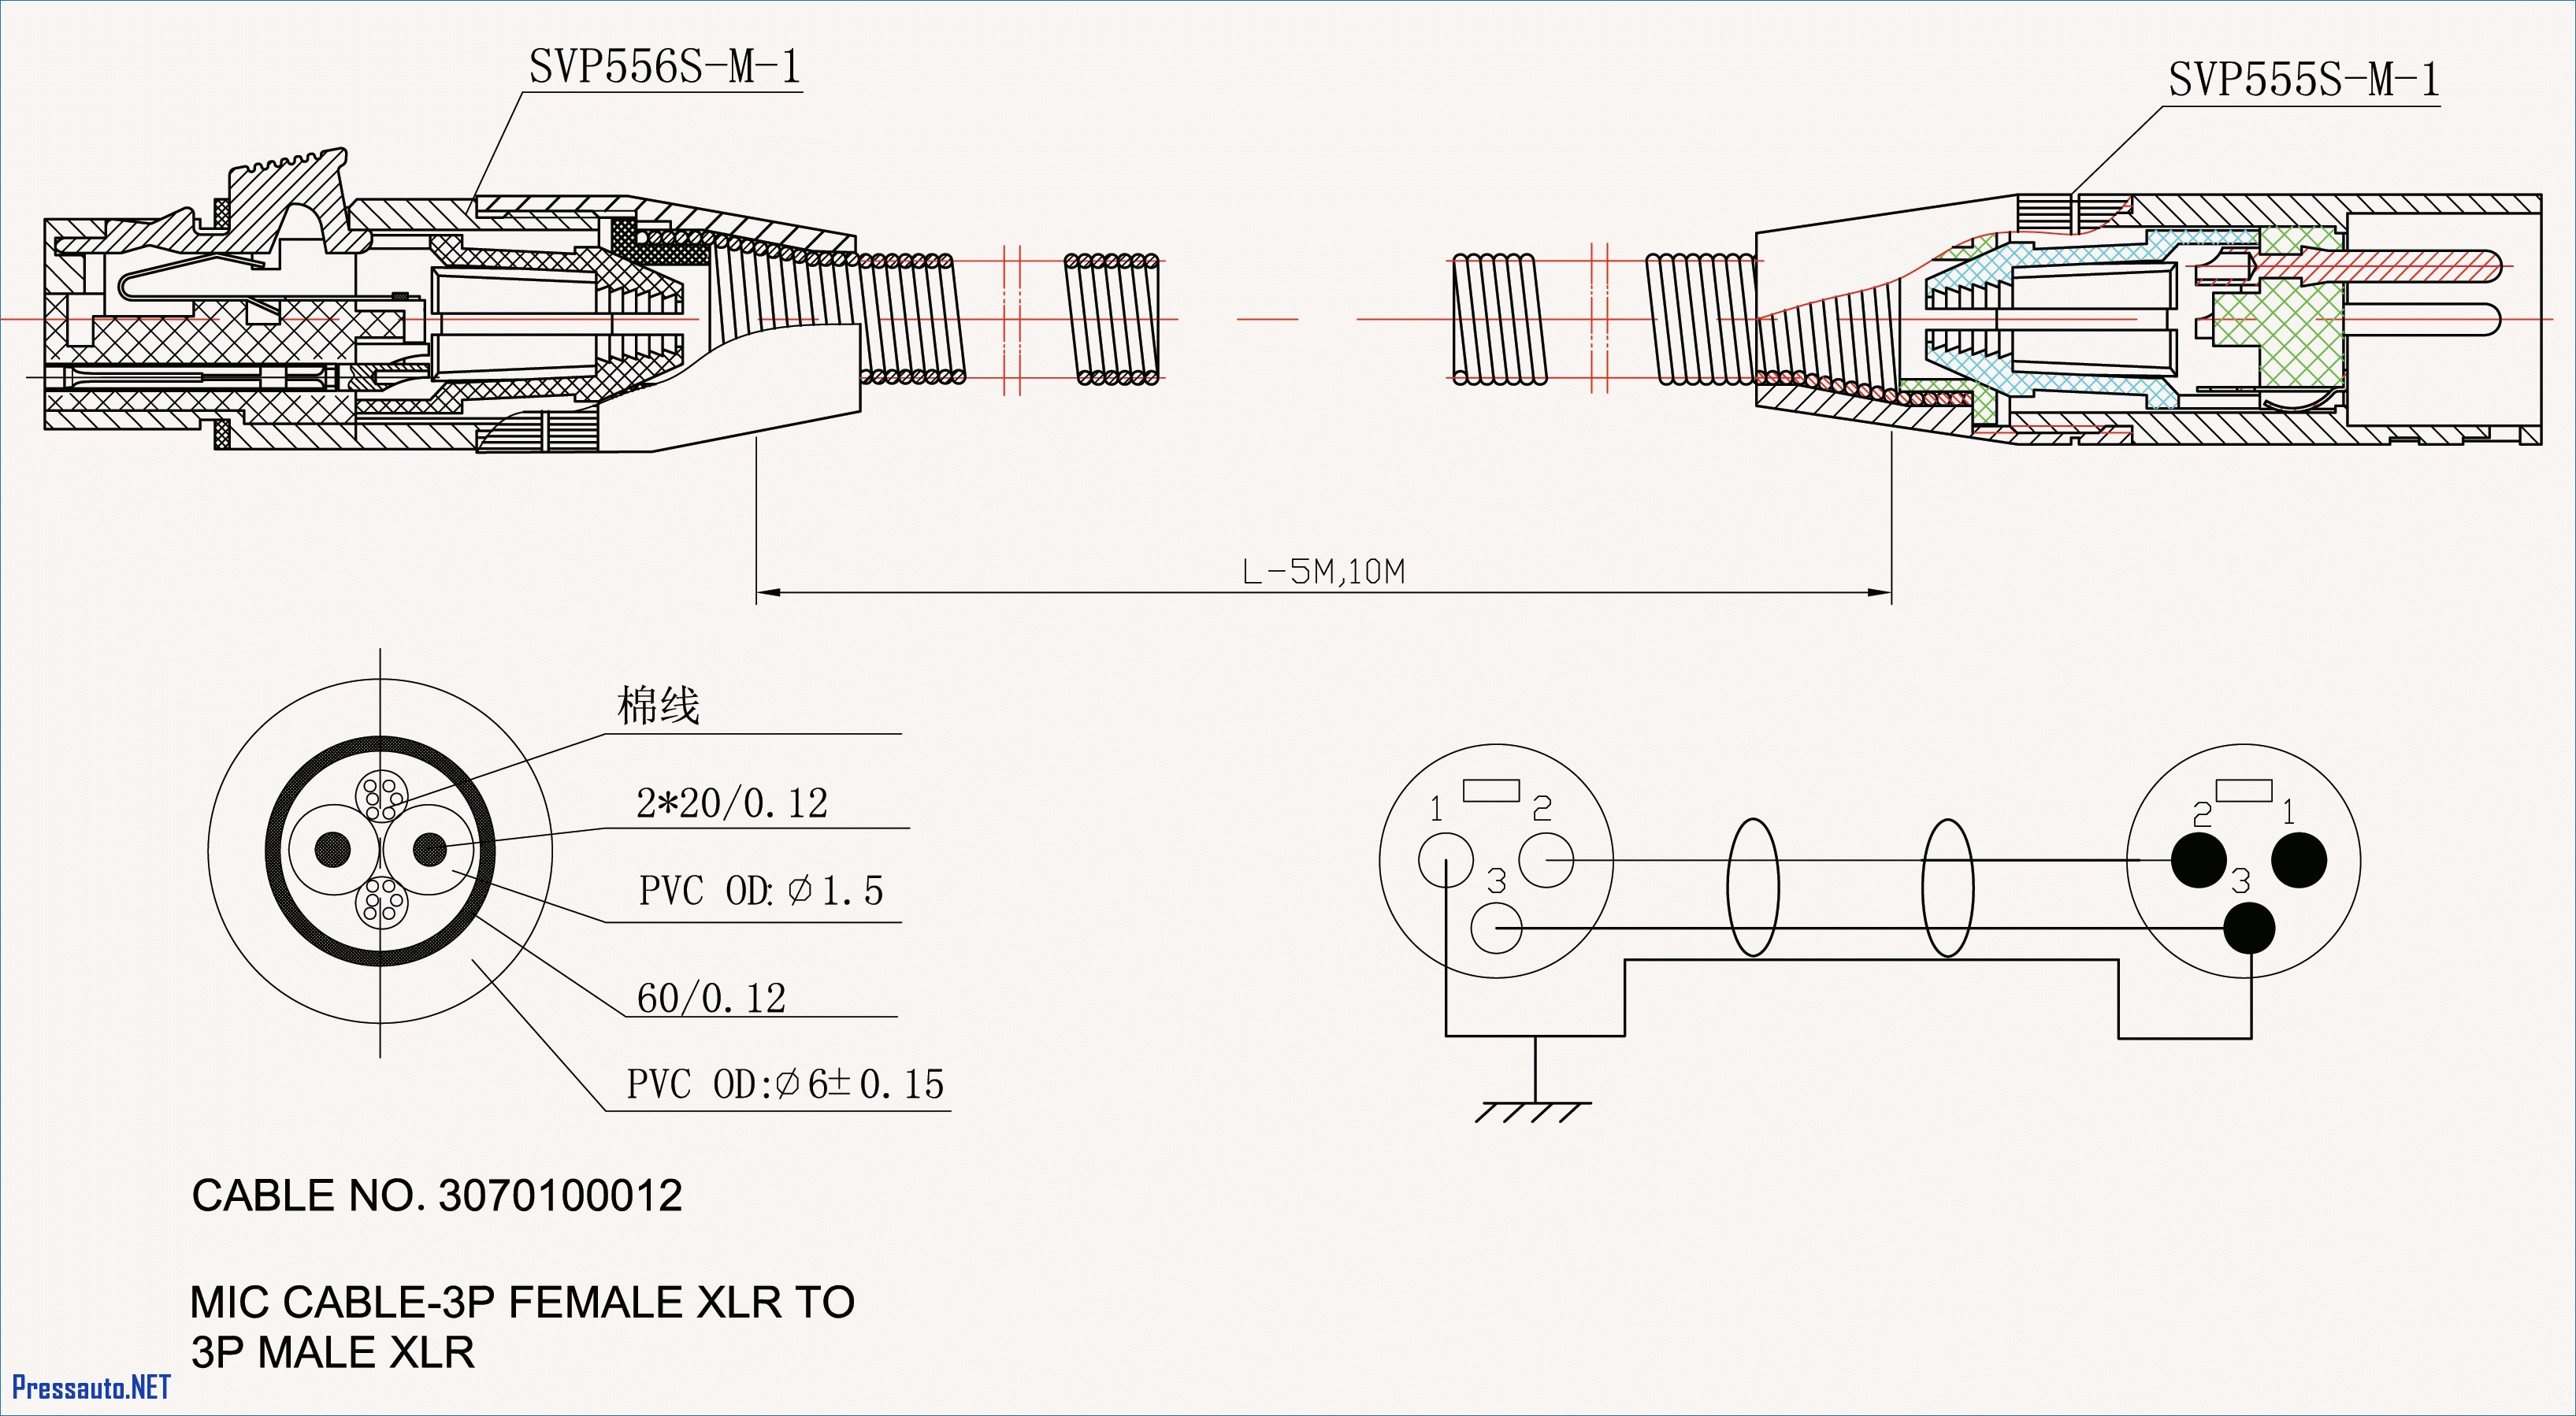 Wiring Diagram for Carry Trailer New Trailer Wiring Harness Diagram Best Elegant 5 Pin Trailer